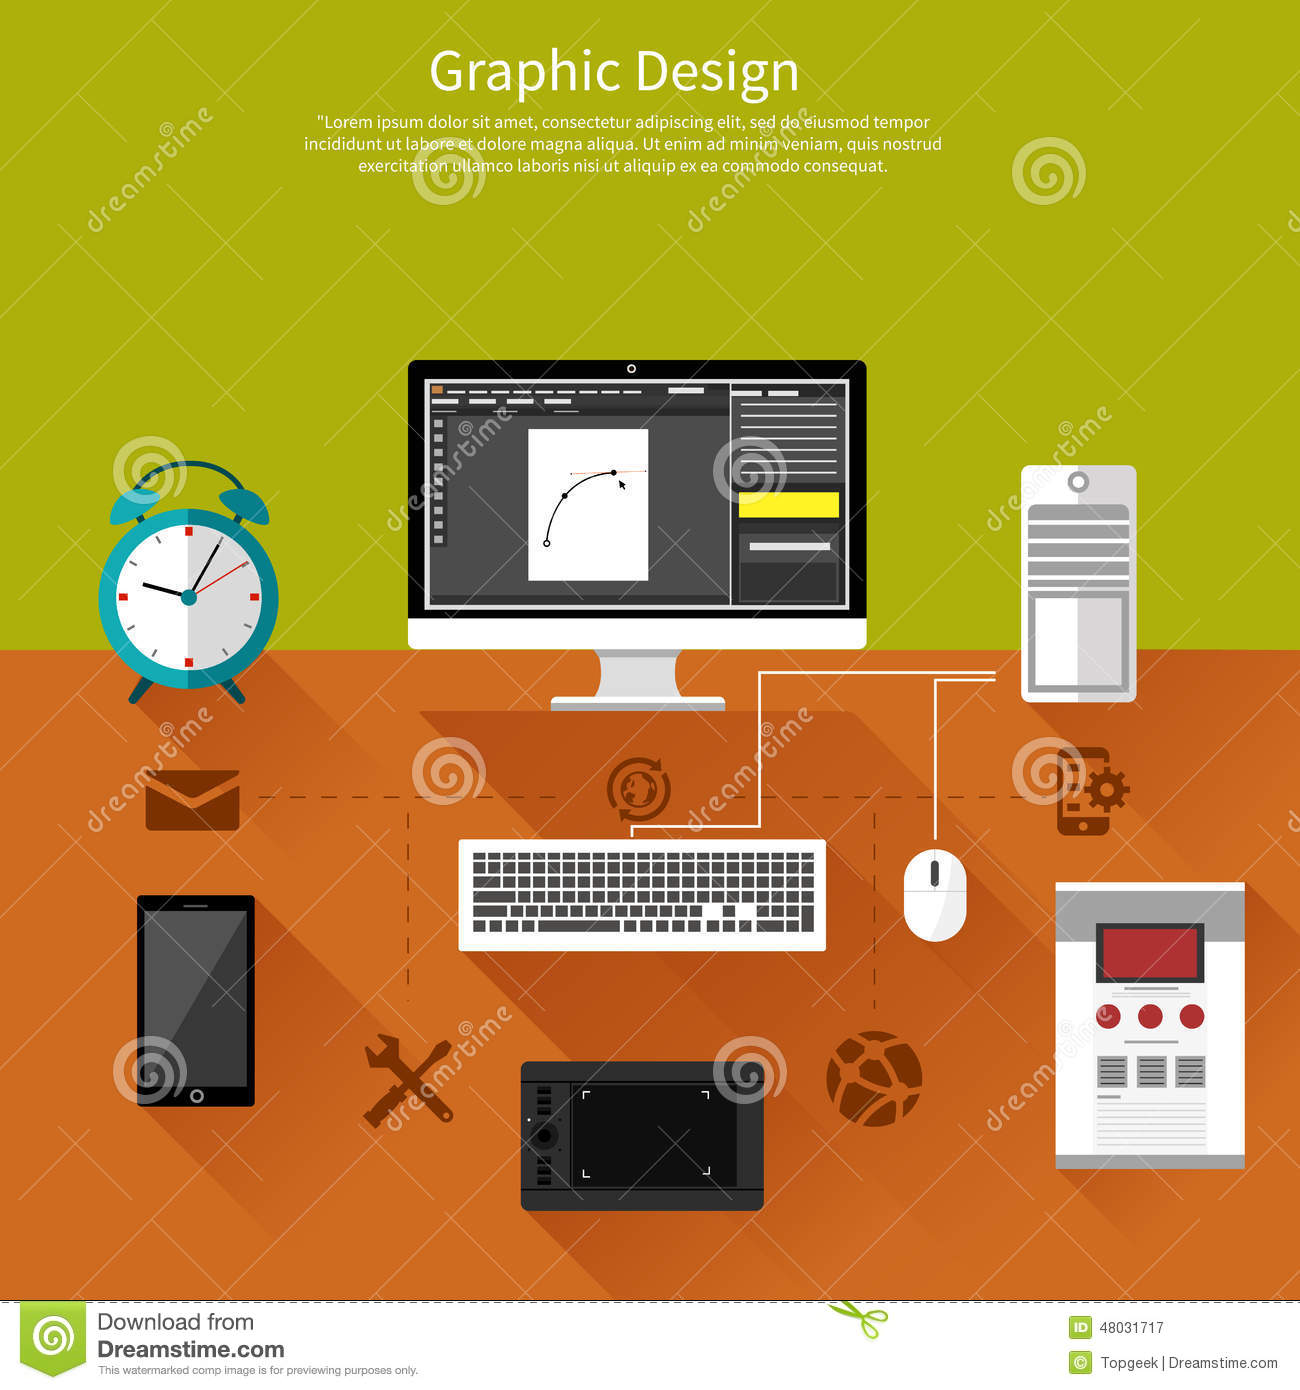 Graphic design and designer tools concept stock vector Computer art software